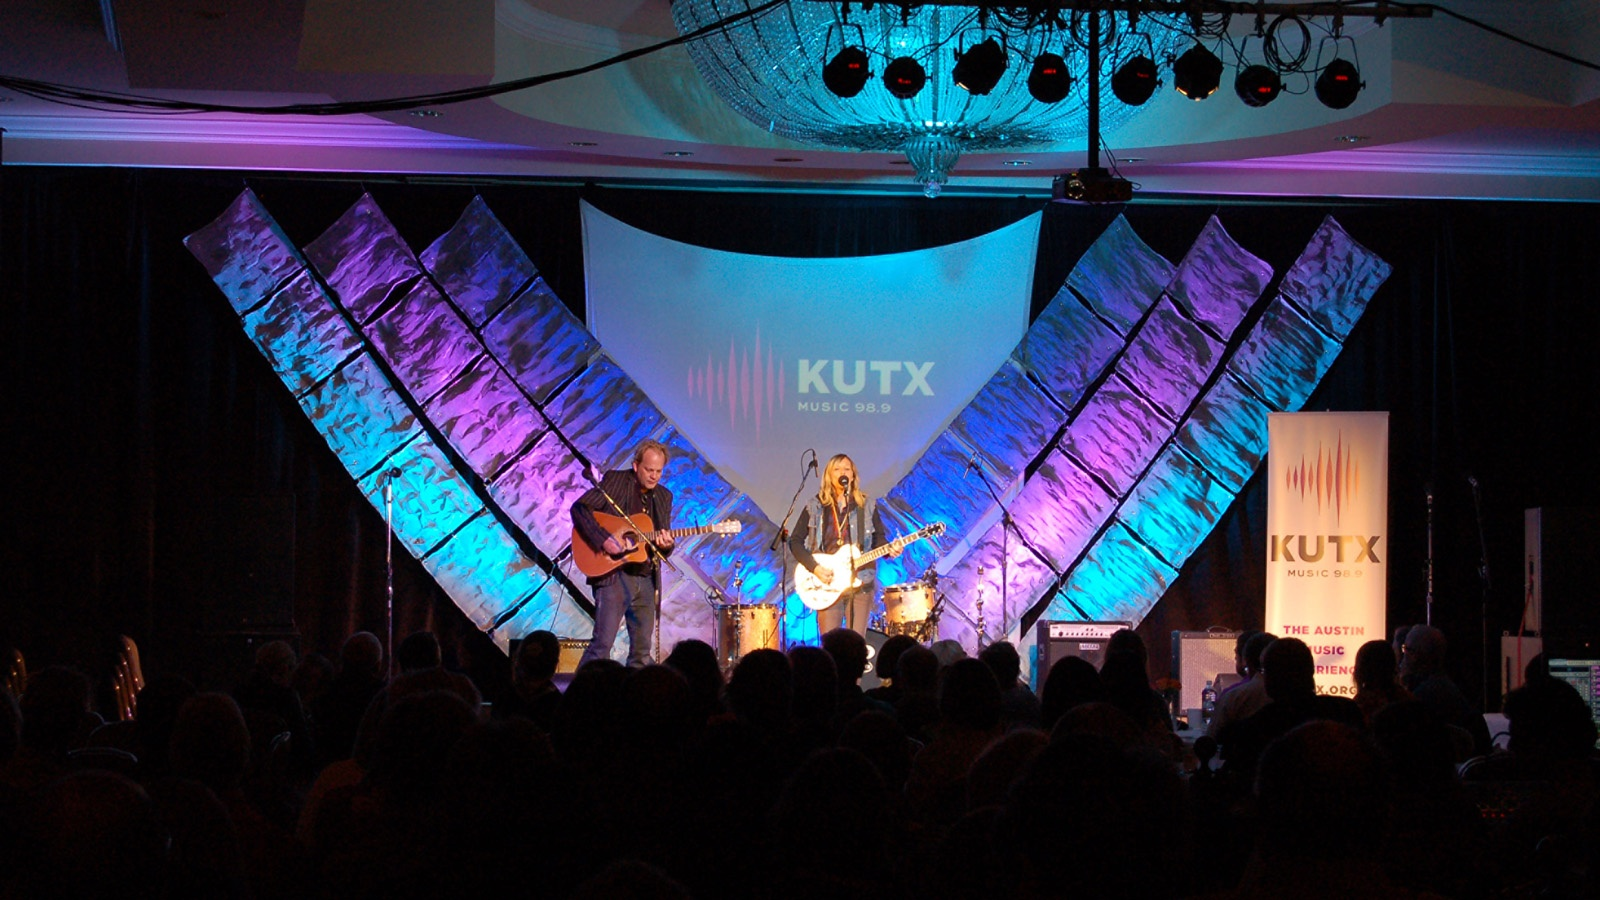 KUTX at the Four Seasons singers with guitars